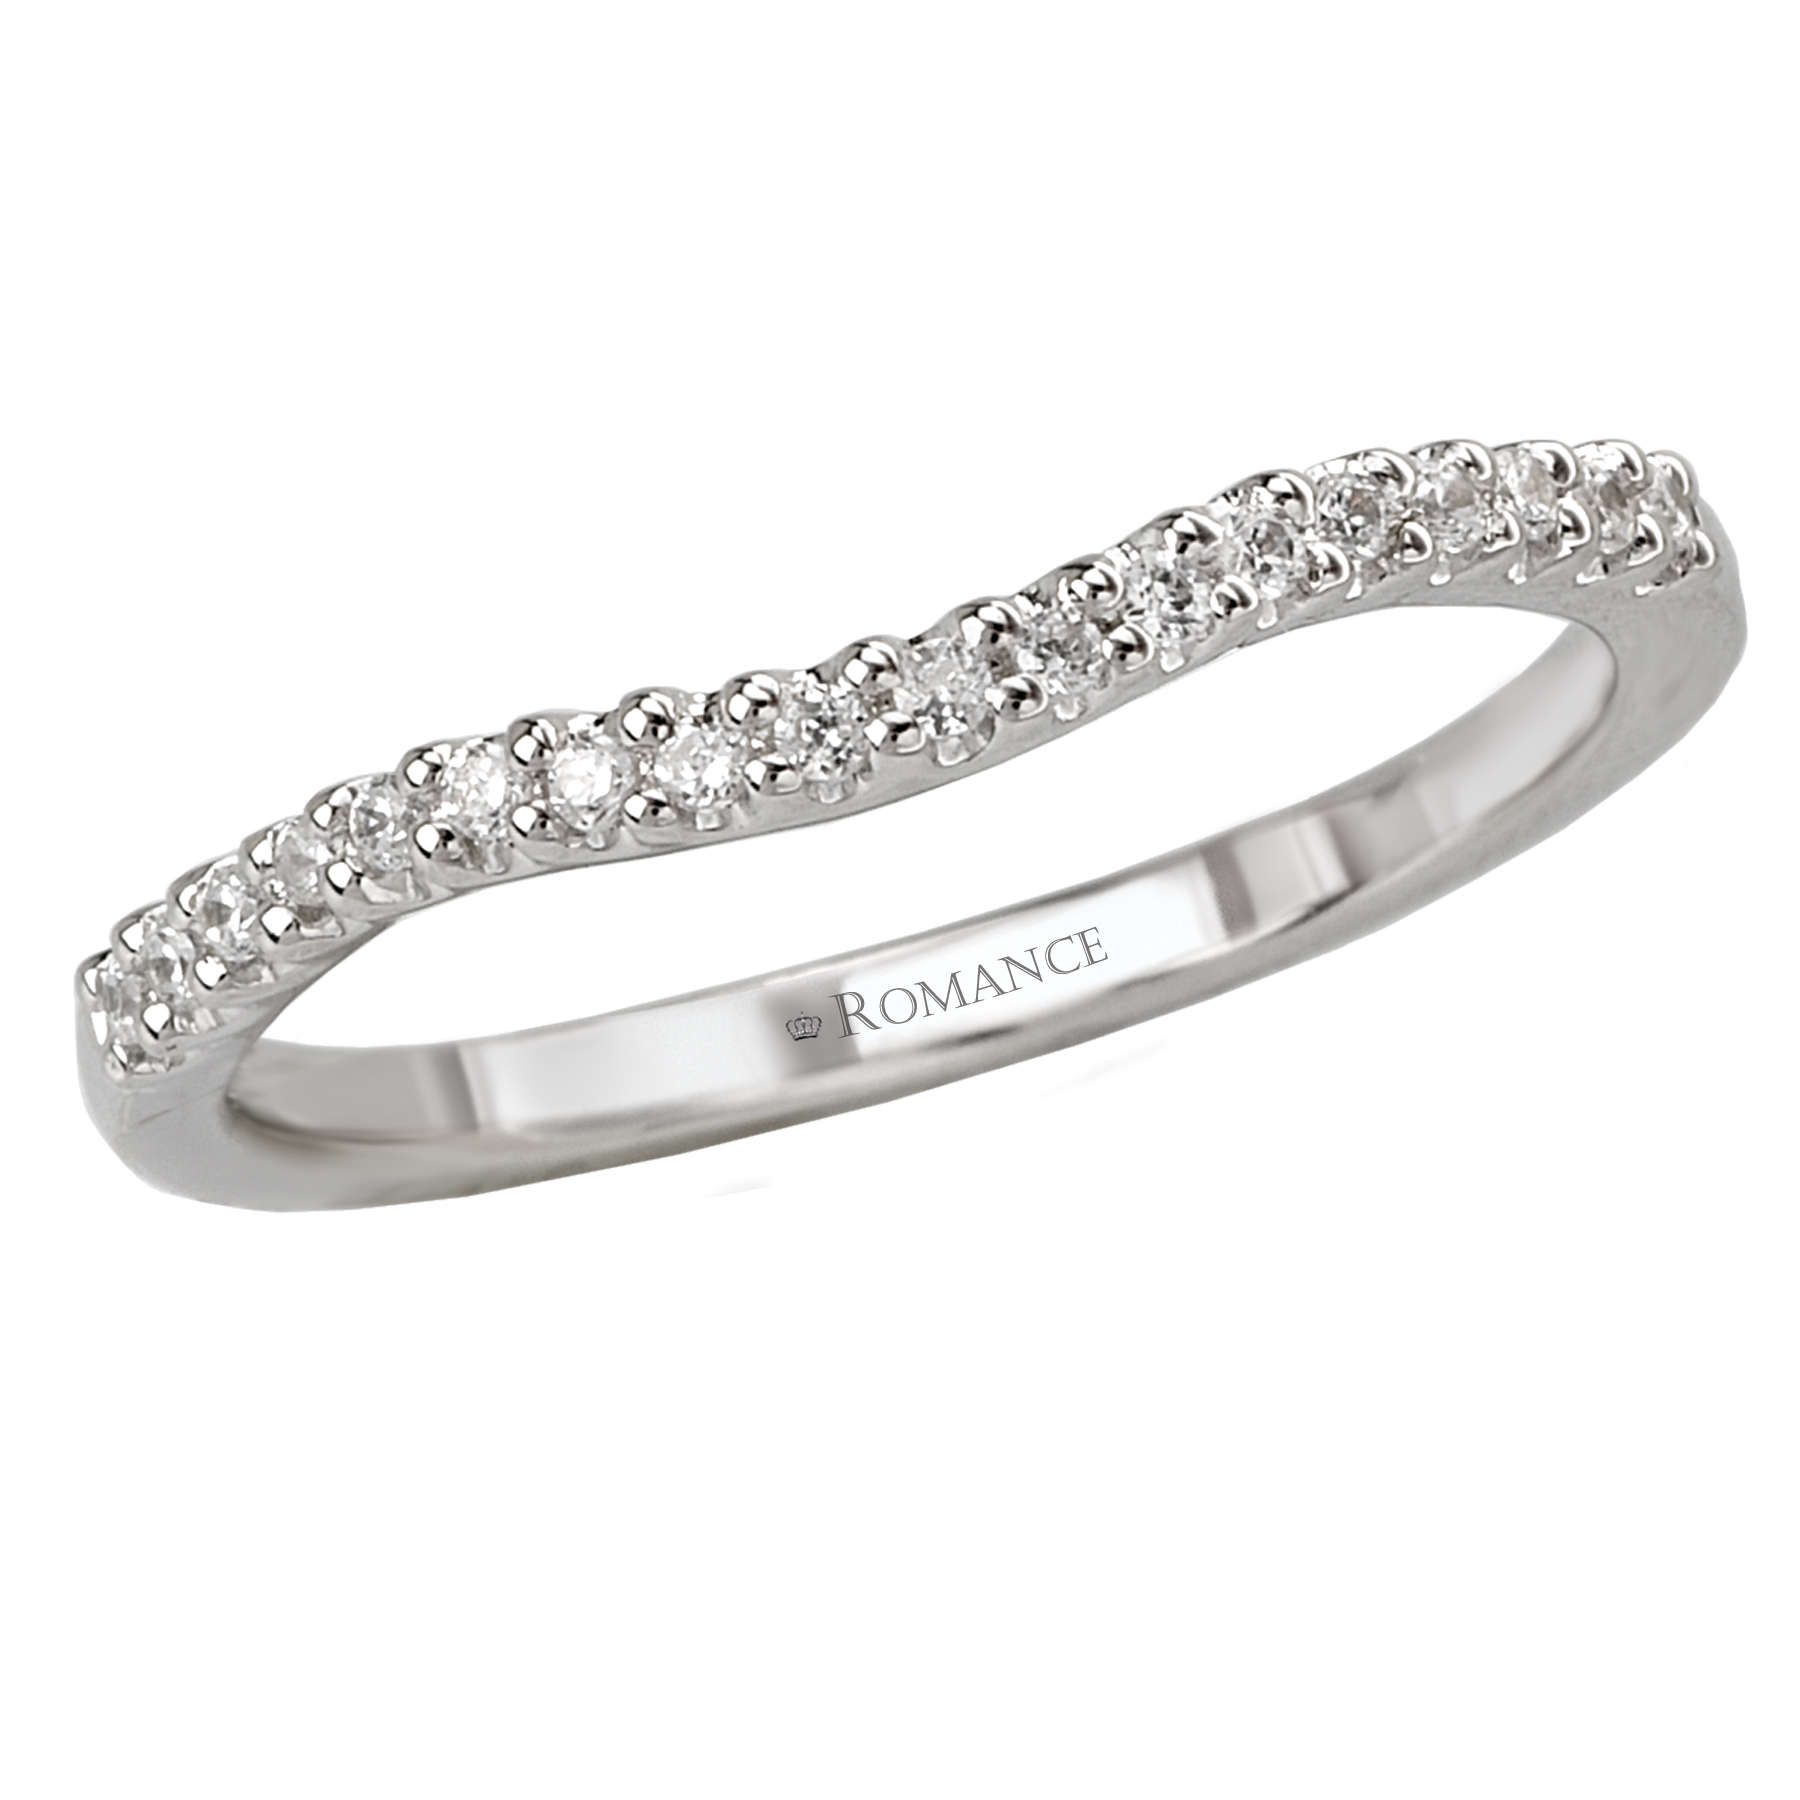 Romance Wedding Bands 118022-W product image